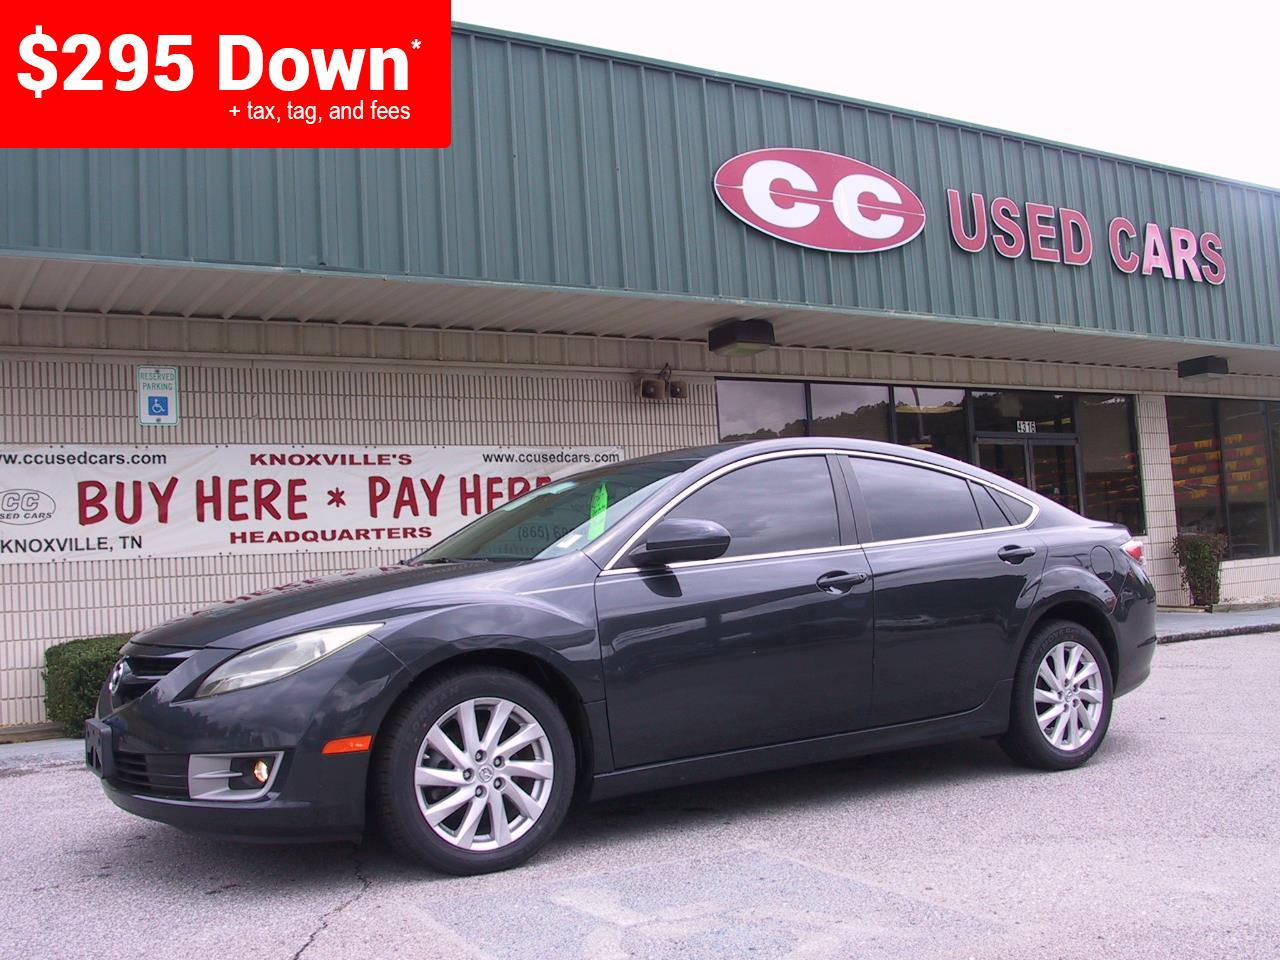 Knoxville Used Cars >> Buy Here Pay Here Cars For Sale Knoxville Tn 37912 Cc Used Cars